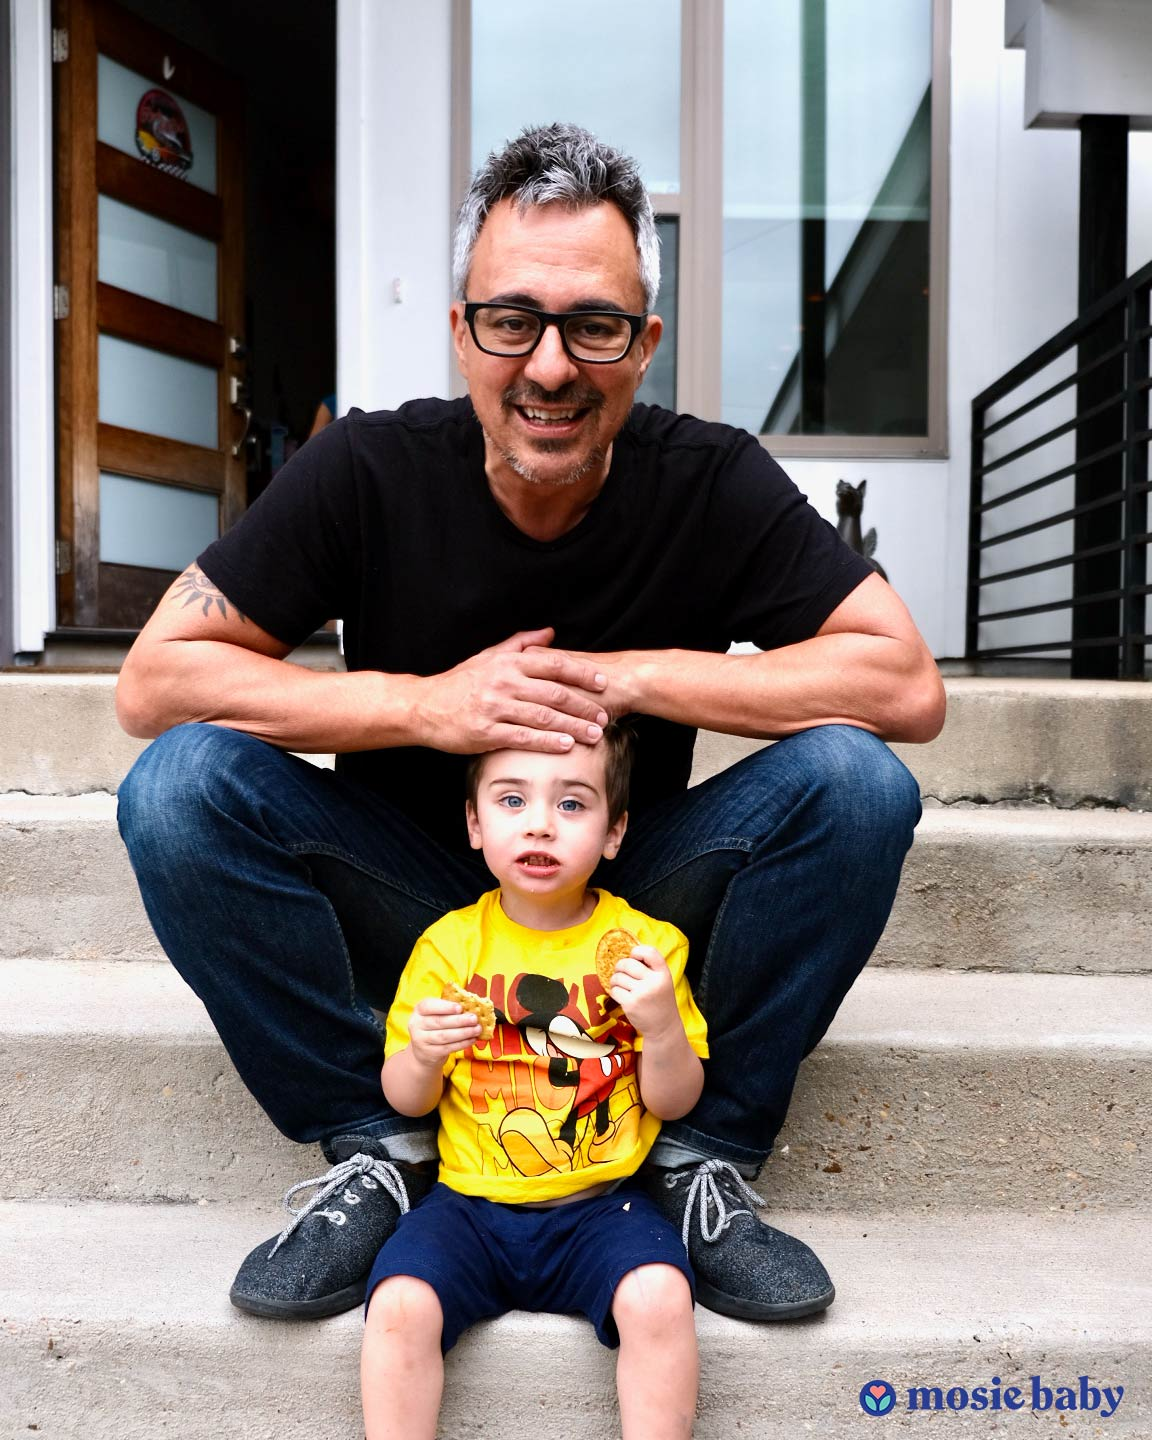 Mosie Baby co-founder Marc Brown and his son sitting on steps